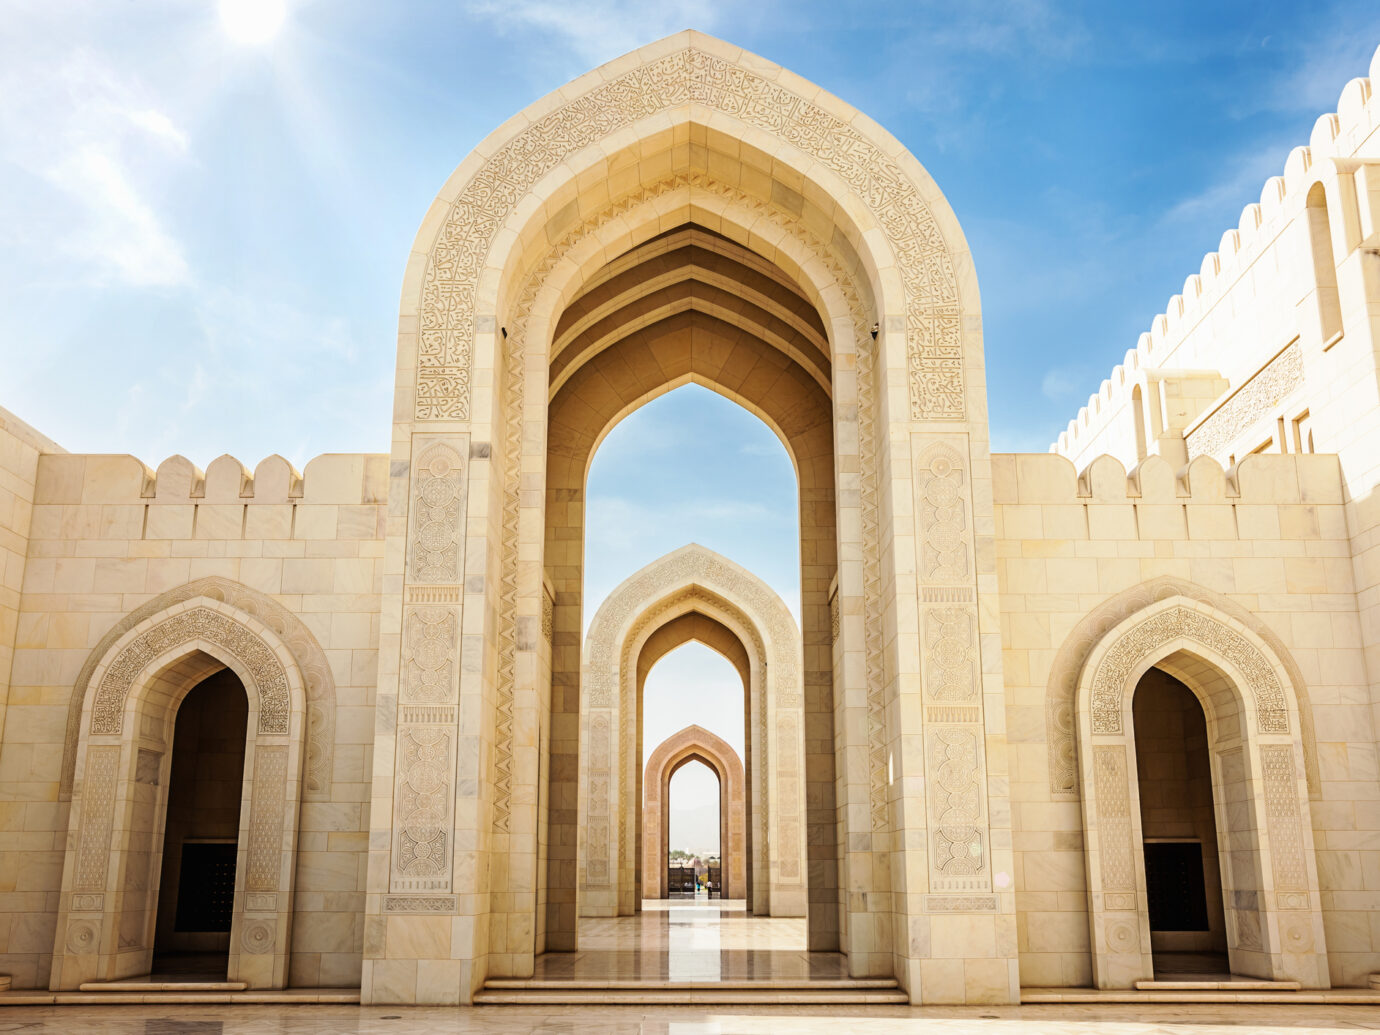 Arches of Sultan Qaboos Grand Mosque in Muscat, Oman, Middle East, Arabia.